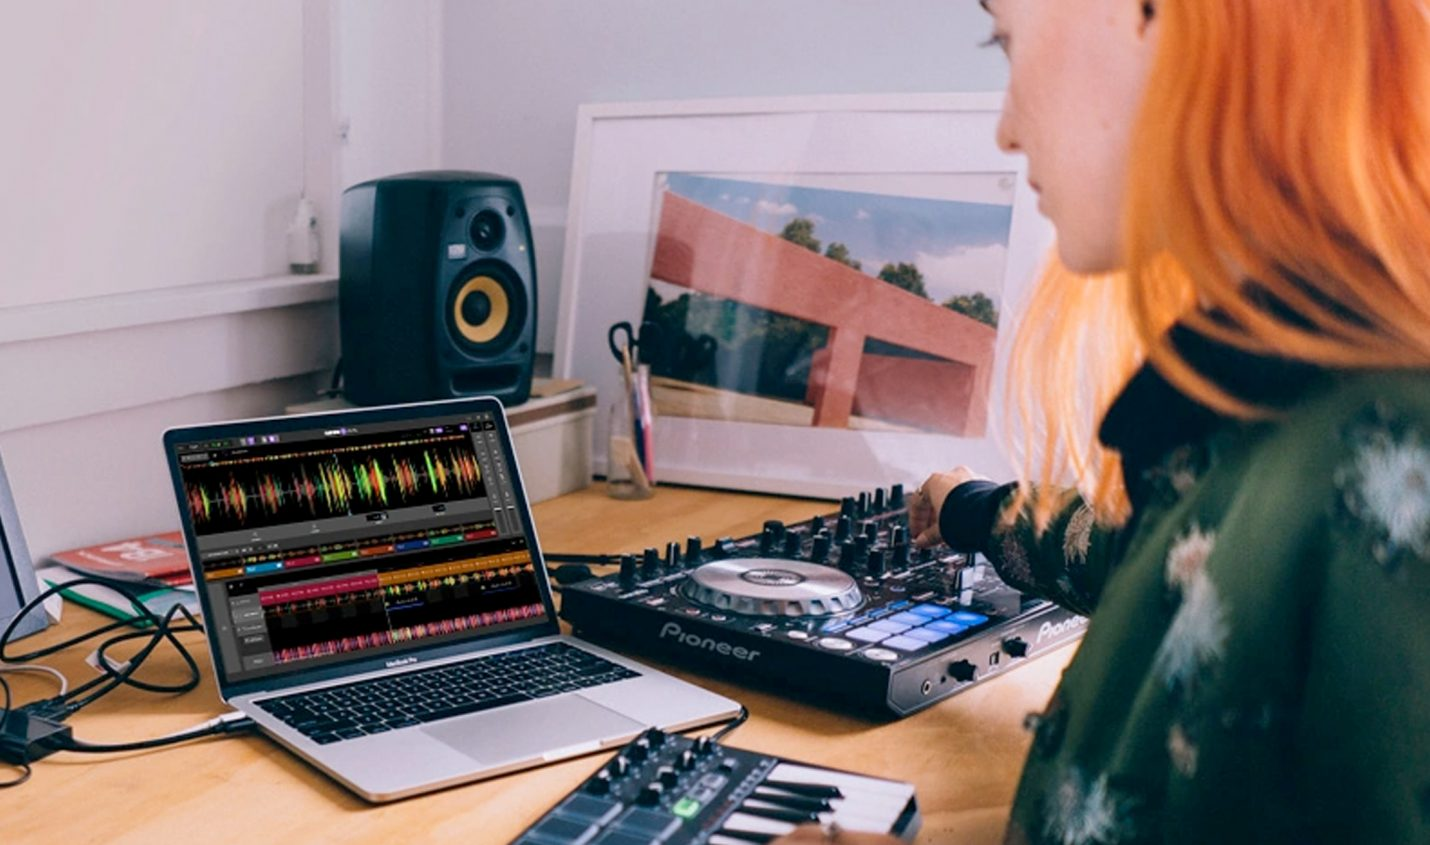 Serato Studio 1.4 Update: Neue Features und Alternative zum Abo-Modell - DJ LAB